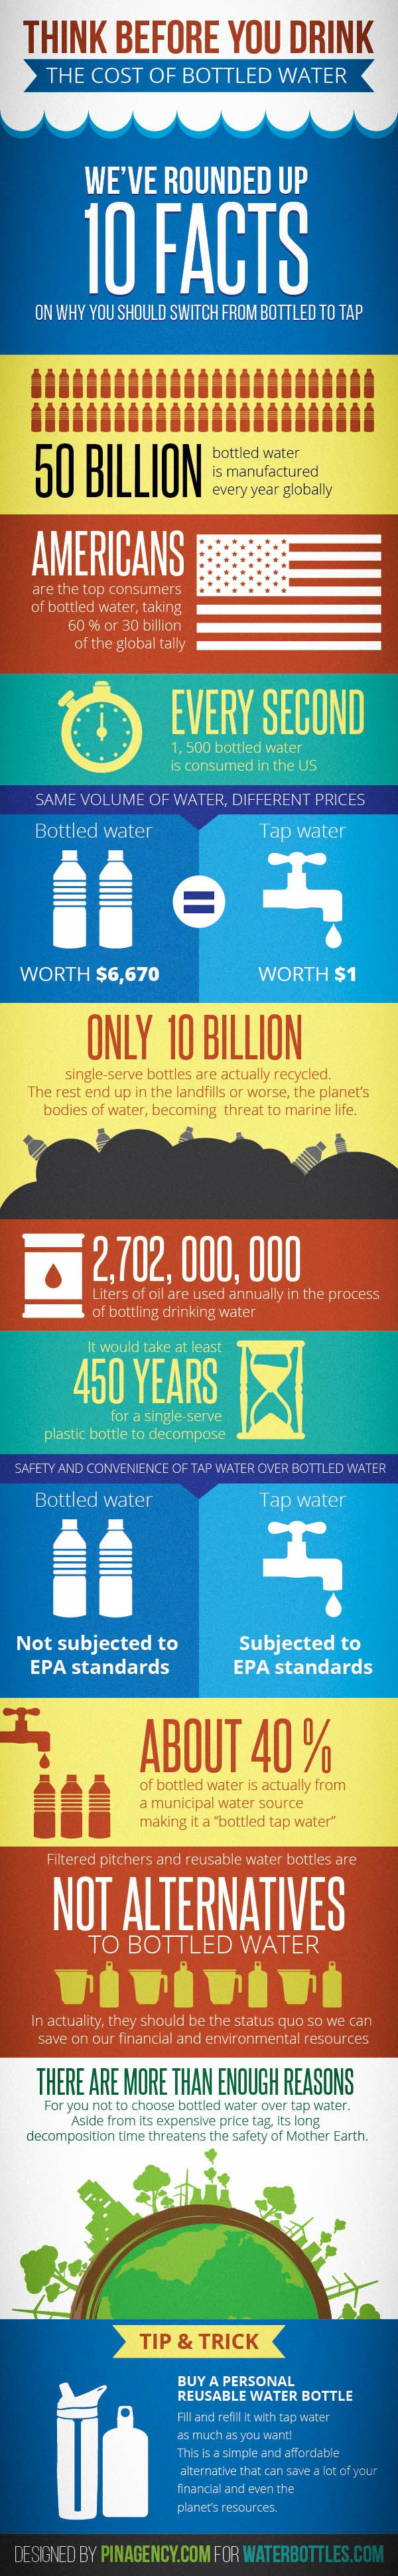 Watergeeks filtered water bottle review the green living guide - Think Before You Drink The Cost Of Bottled Water Infographic Sustainability